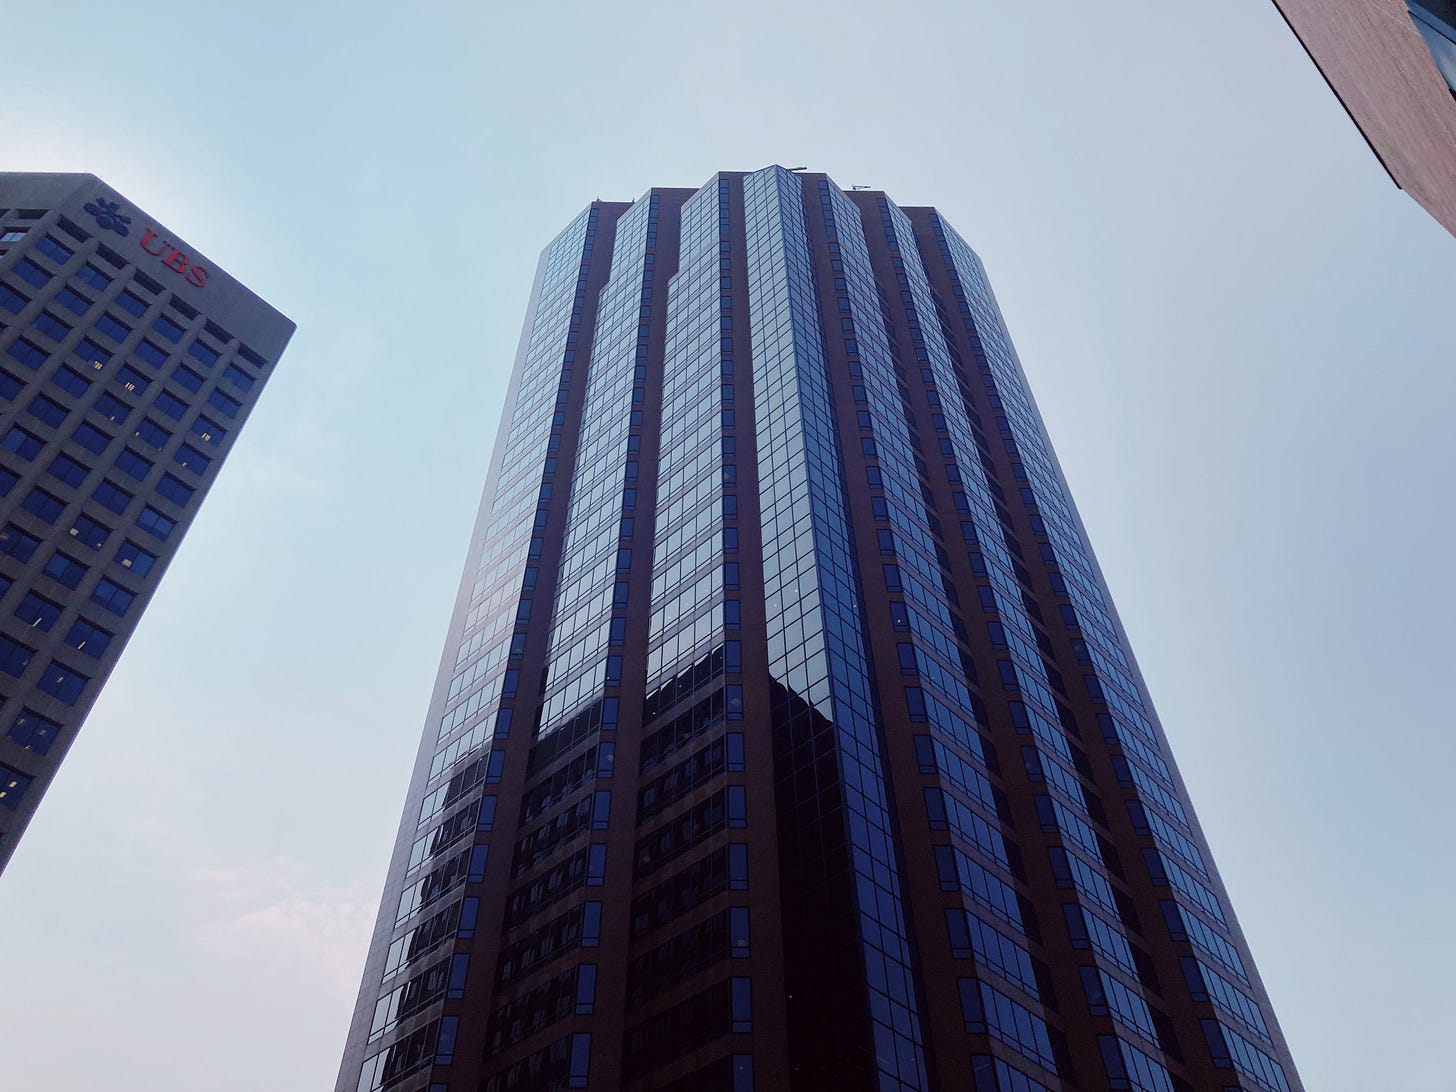 high rise wells fargo place building in st paul, glass reflects the clear blue sky